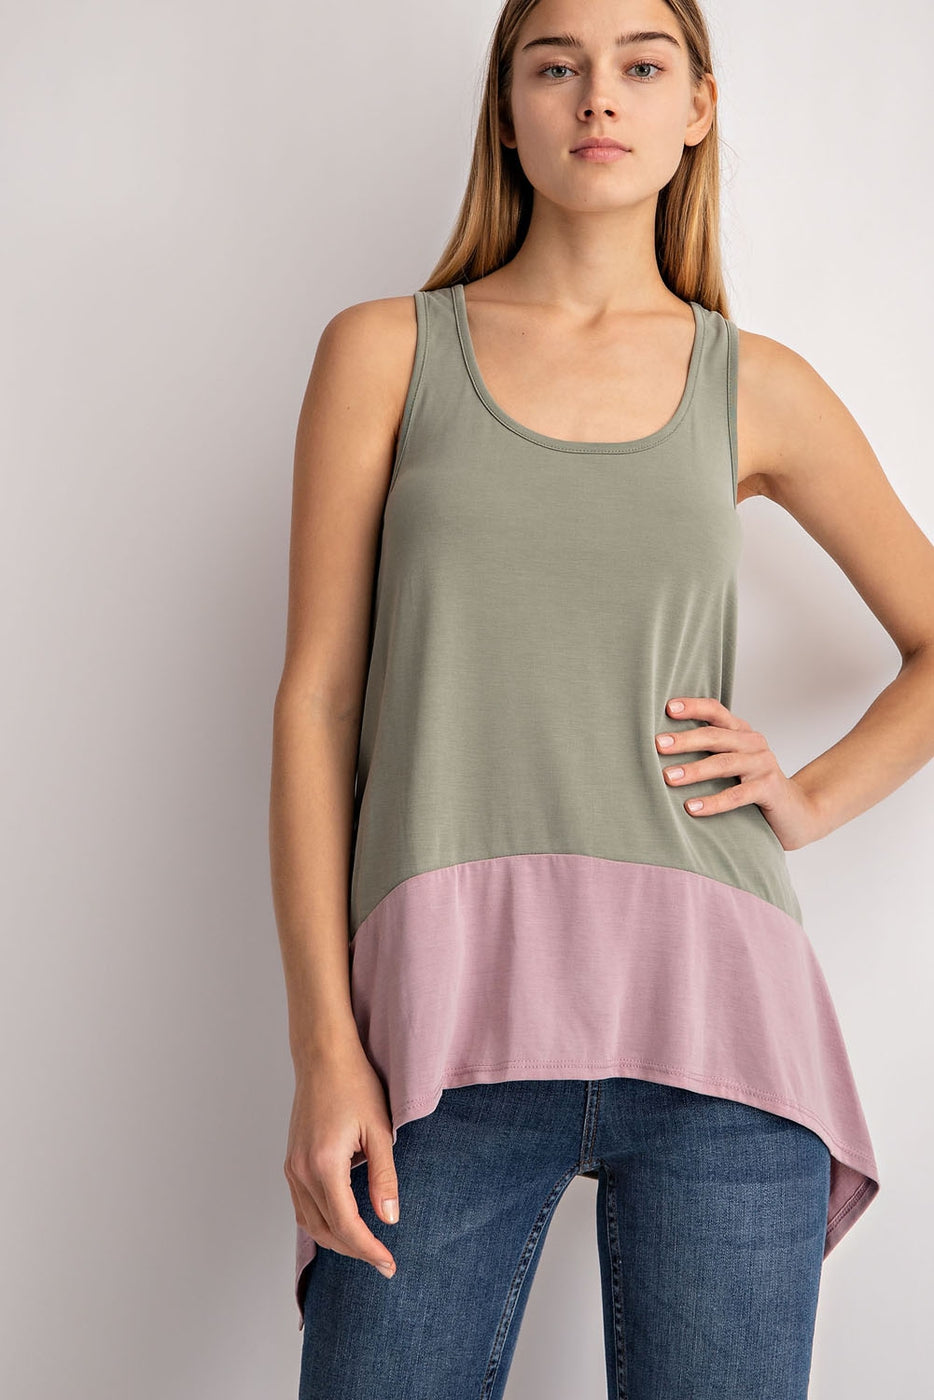 Color Block Tank Top In Olive-Baby Pink Siin Bees